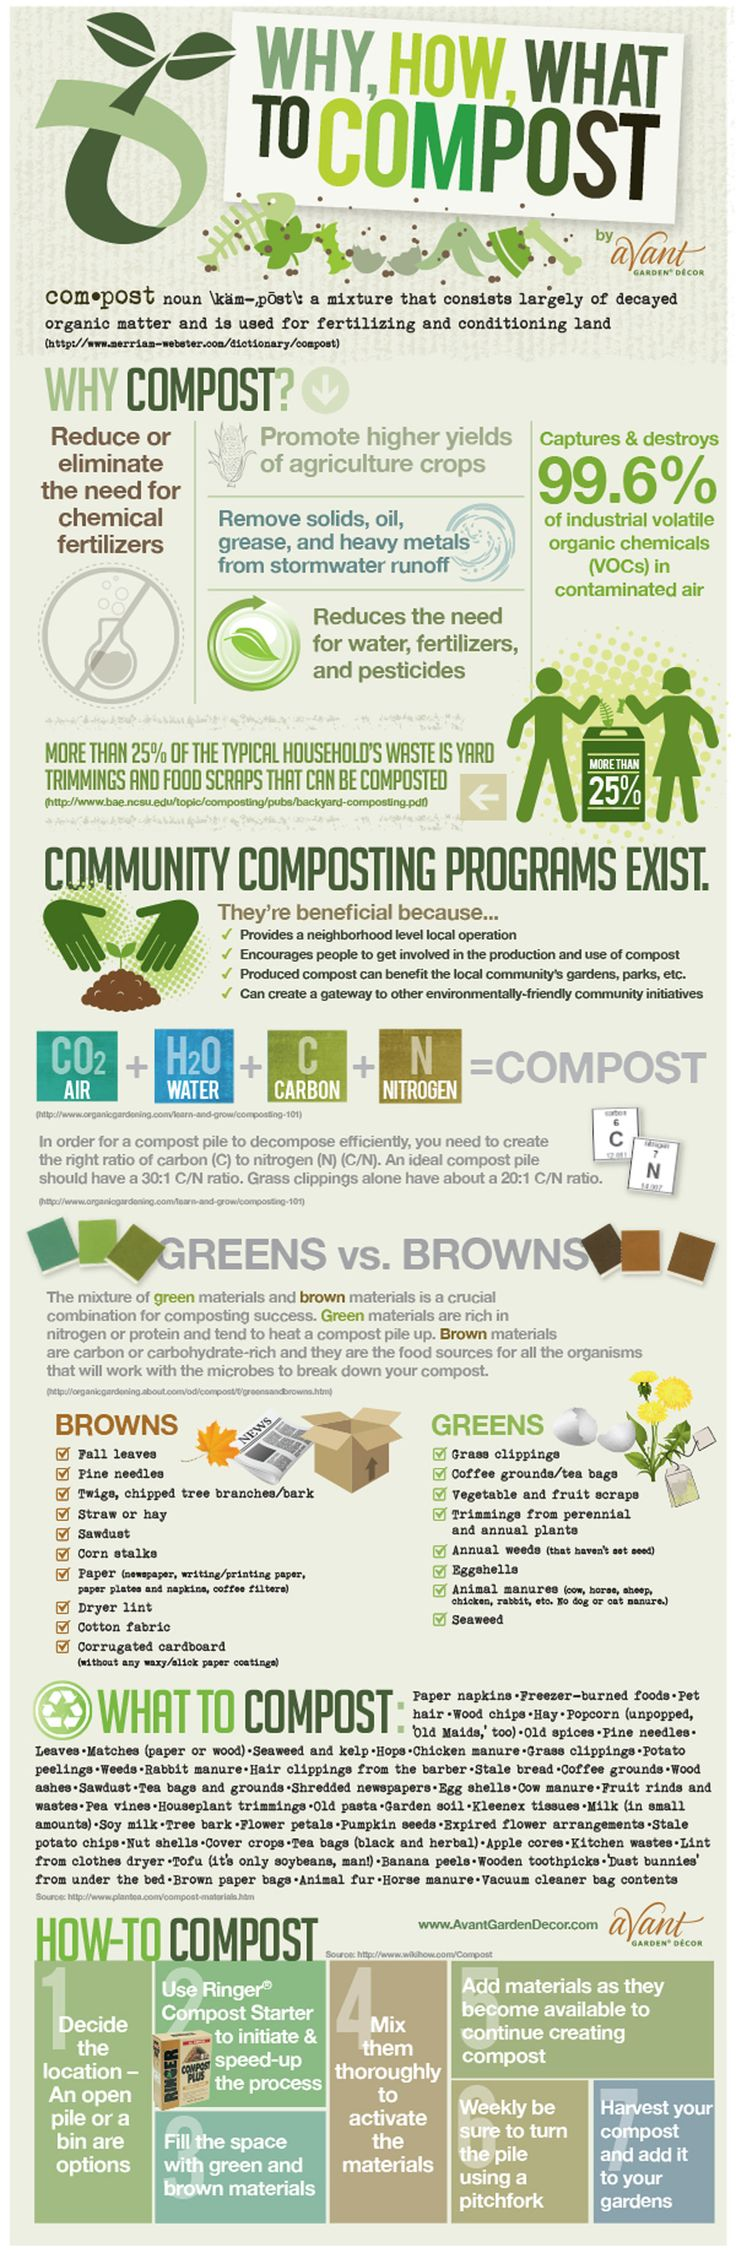 How, why, and what to compost infographic. http://foodrevolution.org/blog/how-to-compost-infographic #organic #gardening